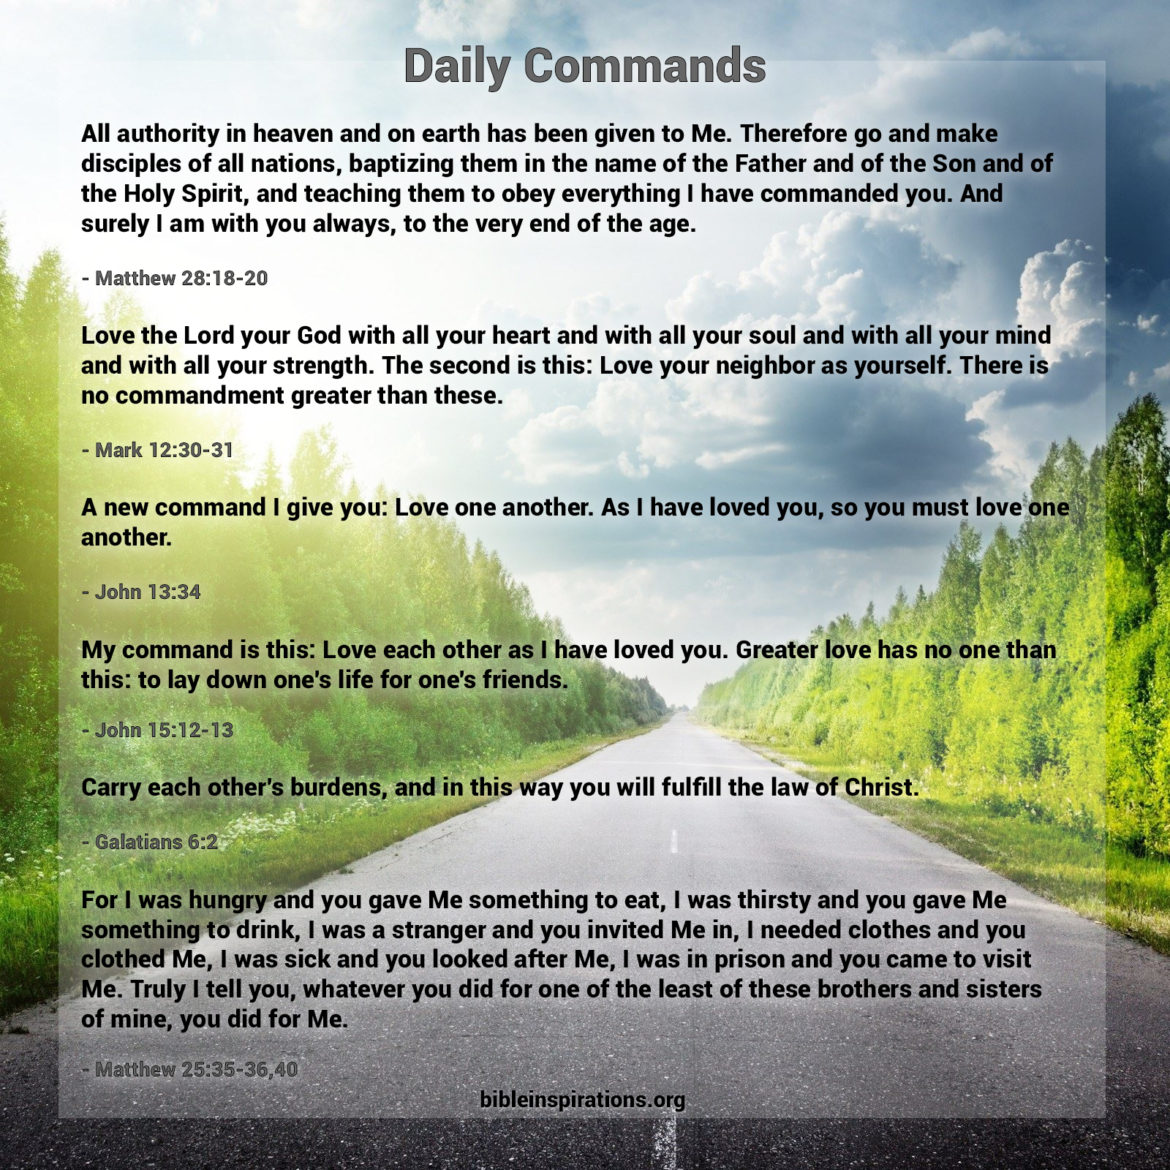 daily-commands-great-commission-great-commandment-love-one-another